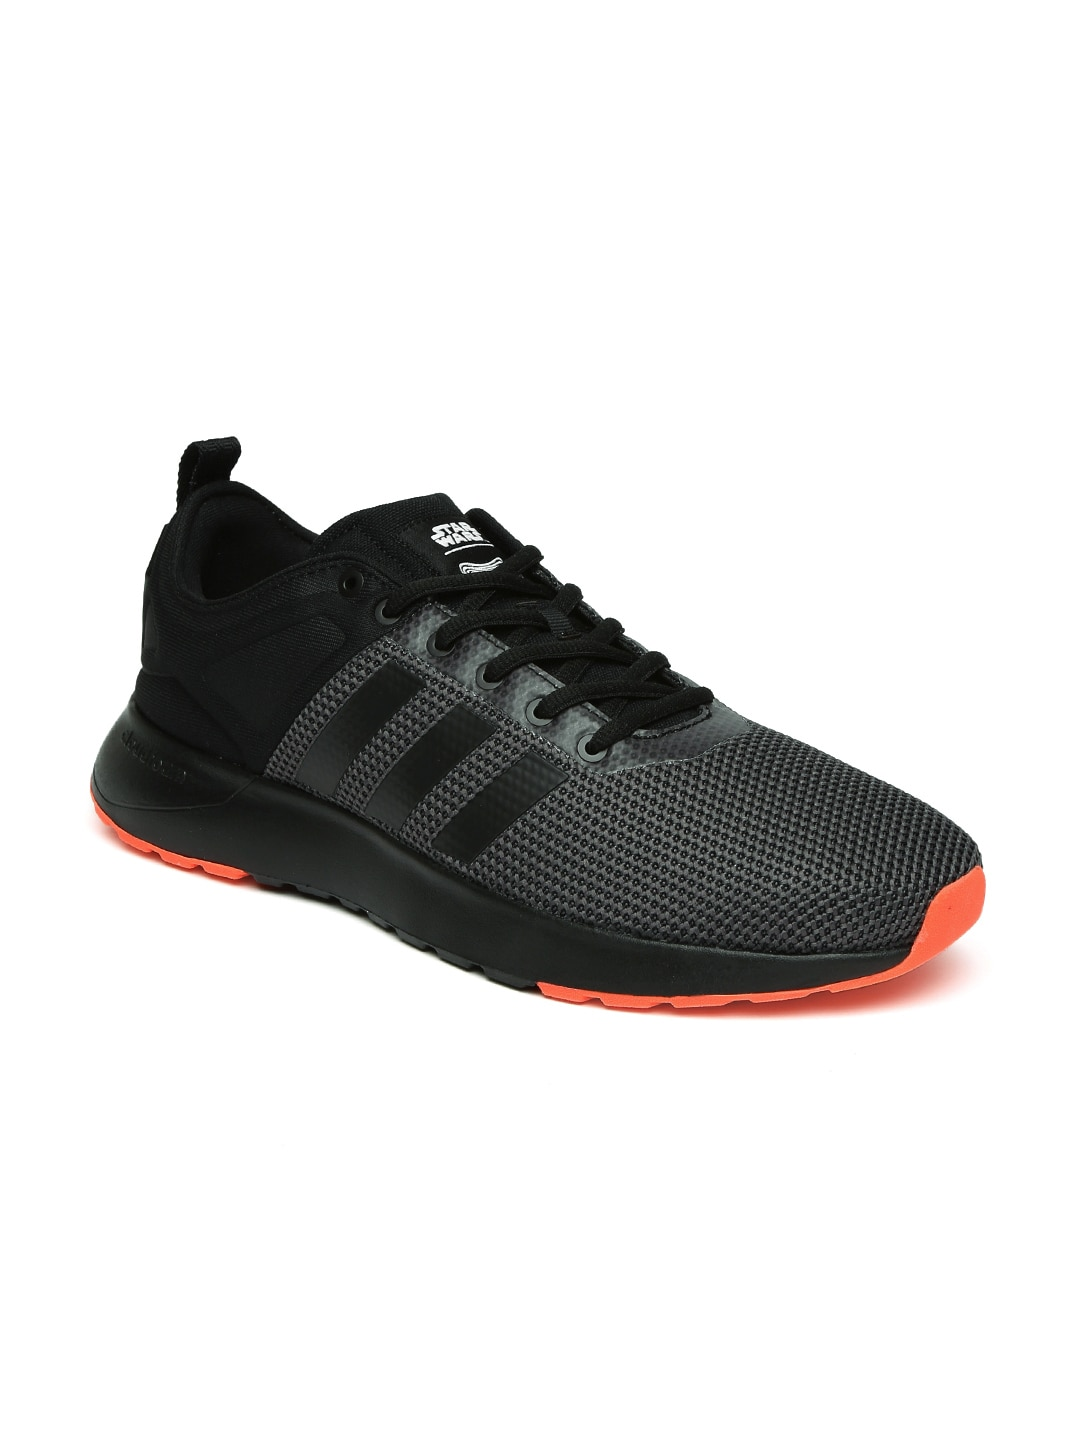 Adidas aw4269 Neo Men Charcoal Cloudfoam Super Racer Sneakers- Price in  India 67186104f